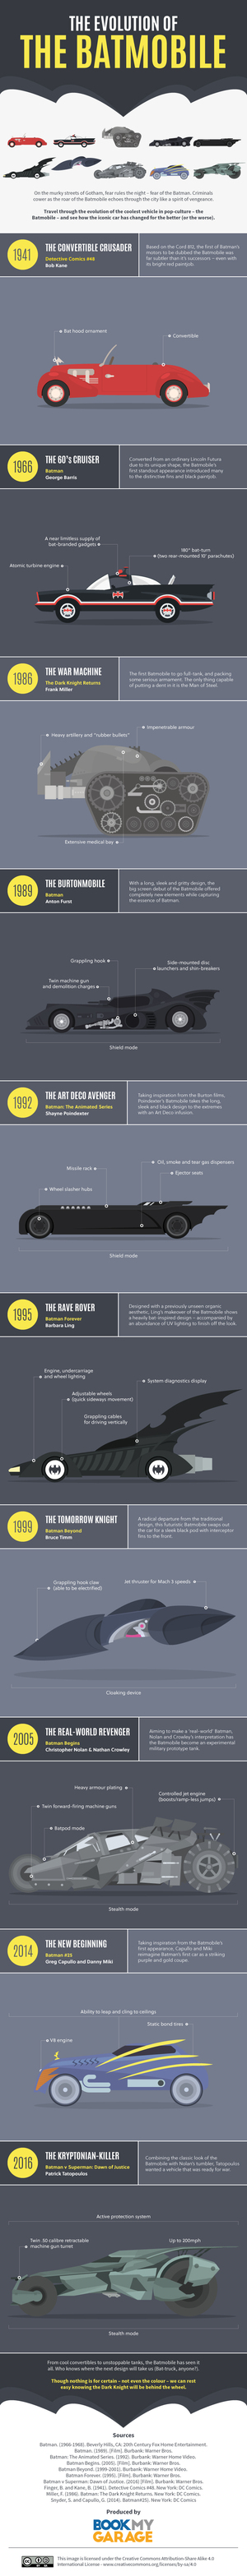 the-evolution-of-the-batmobile